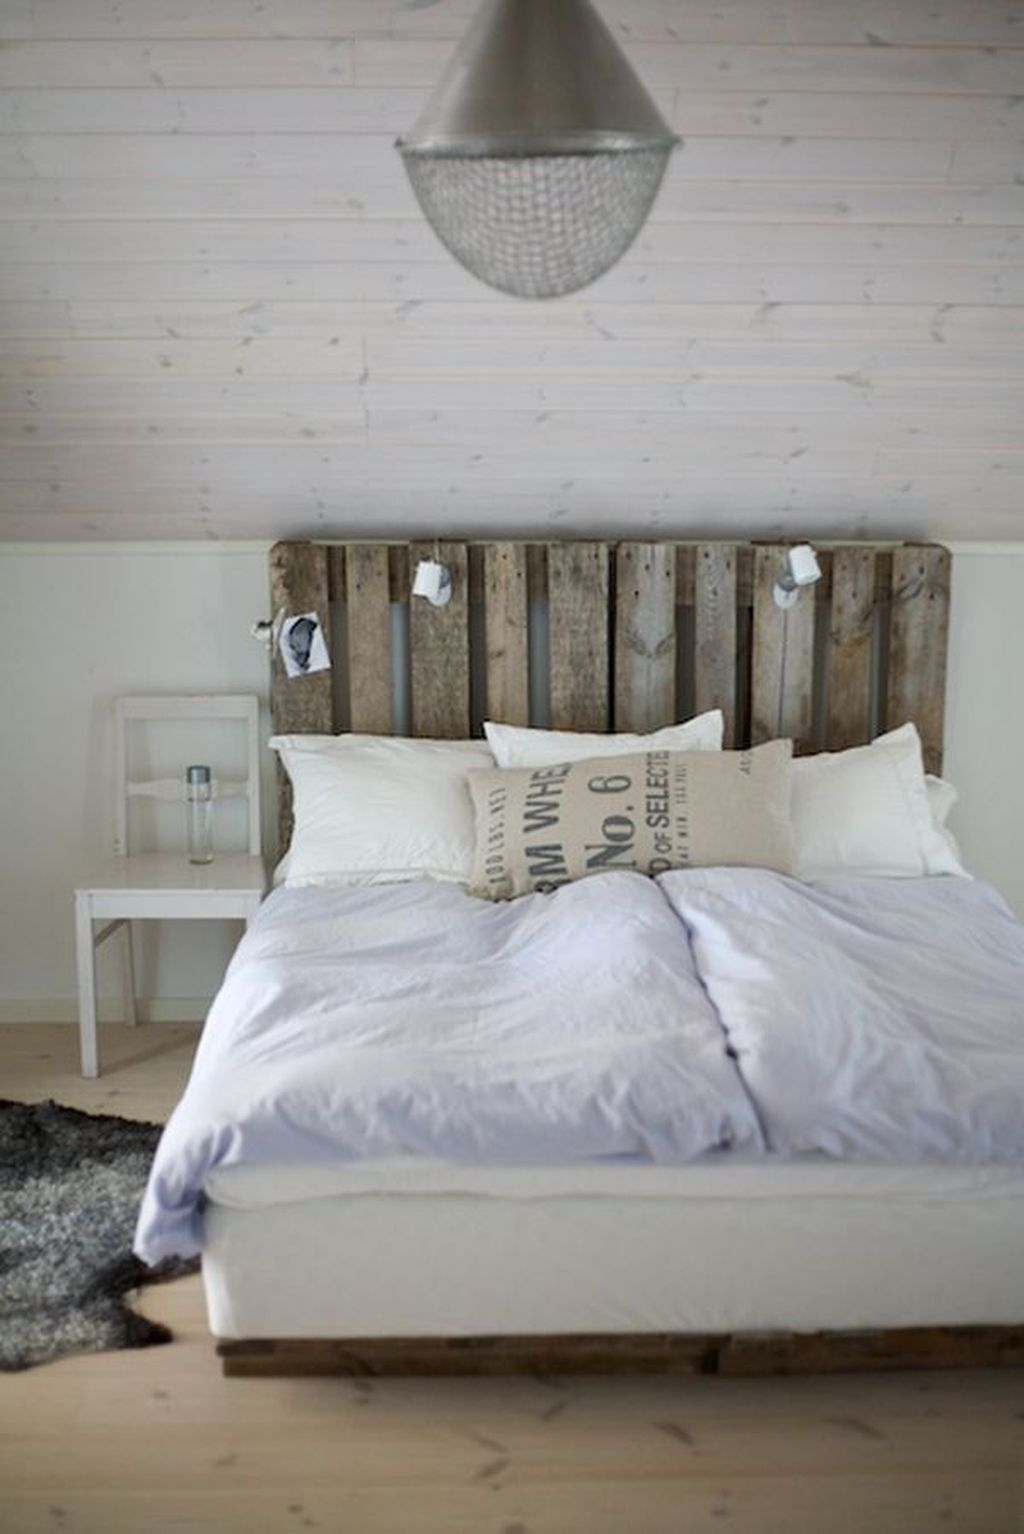 30 Fancy Diy Ideas To Make Bed Place From Pallet Project Pallet